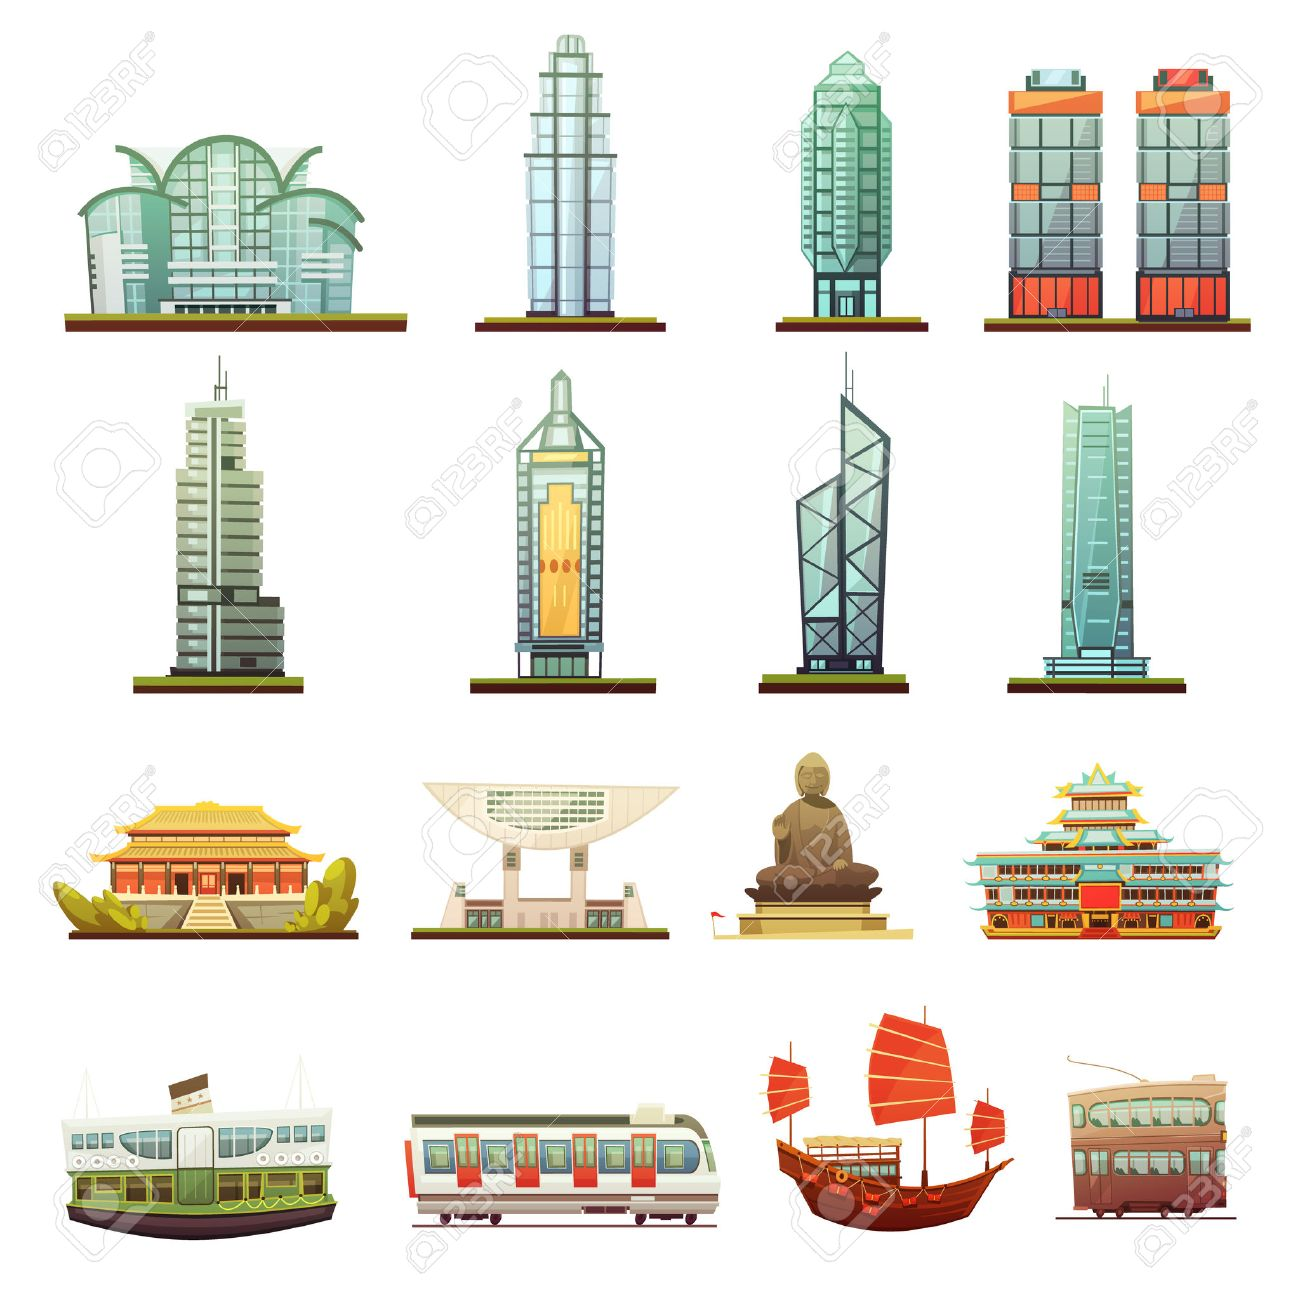 Hong Kong city landmarks temple buddha statue and transportation elements retro cartoon icons collection isolated vector illustration Stock Vector - 62525408